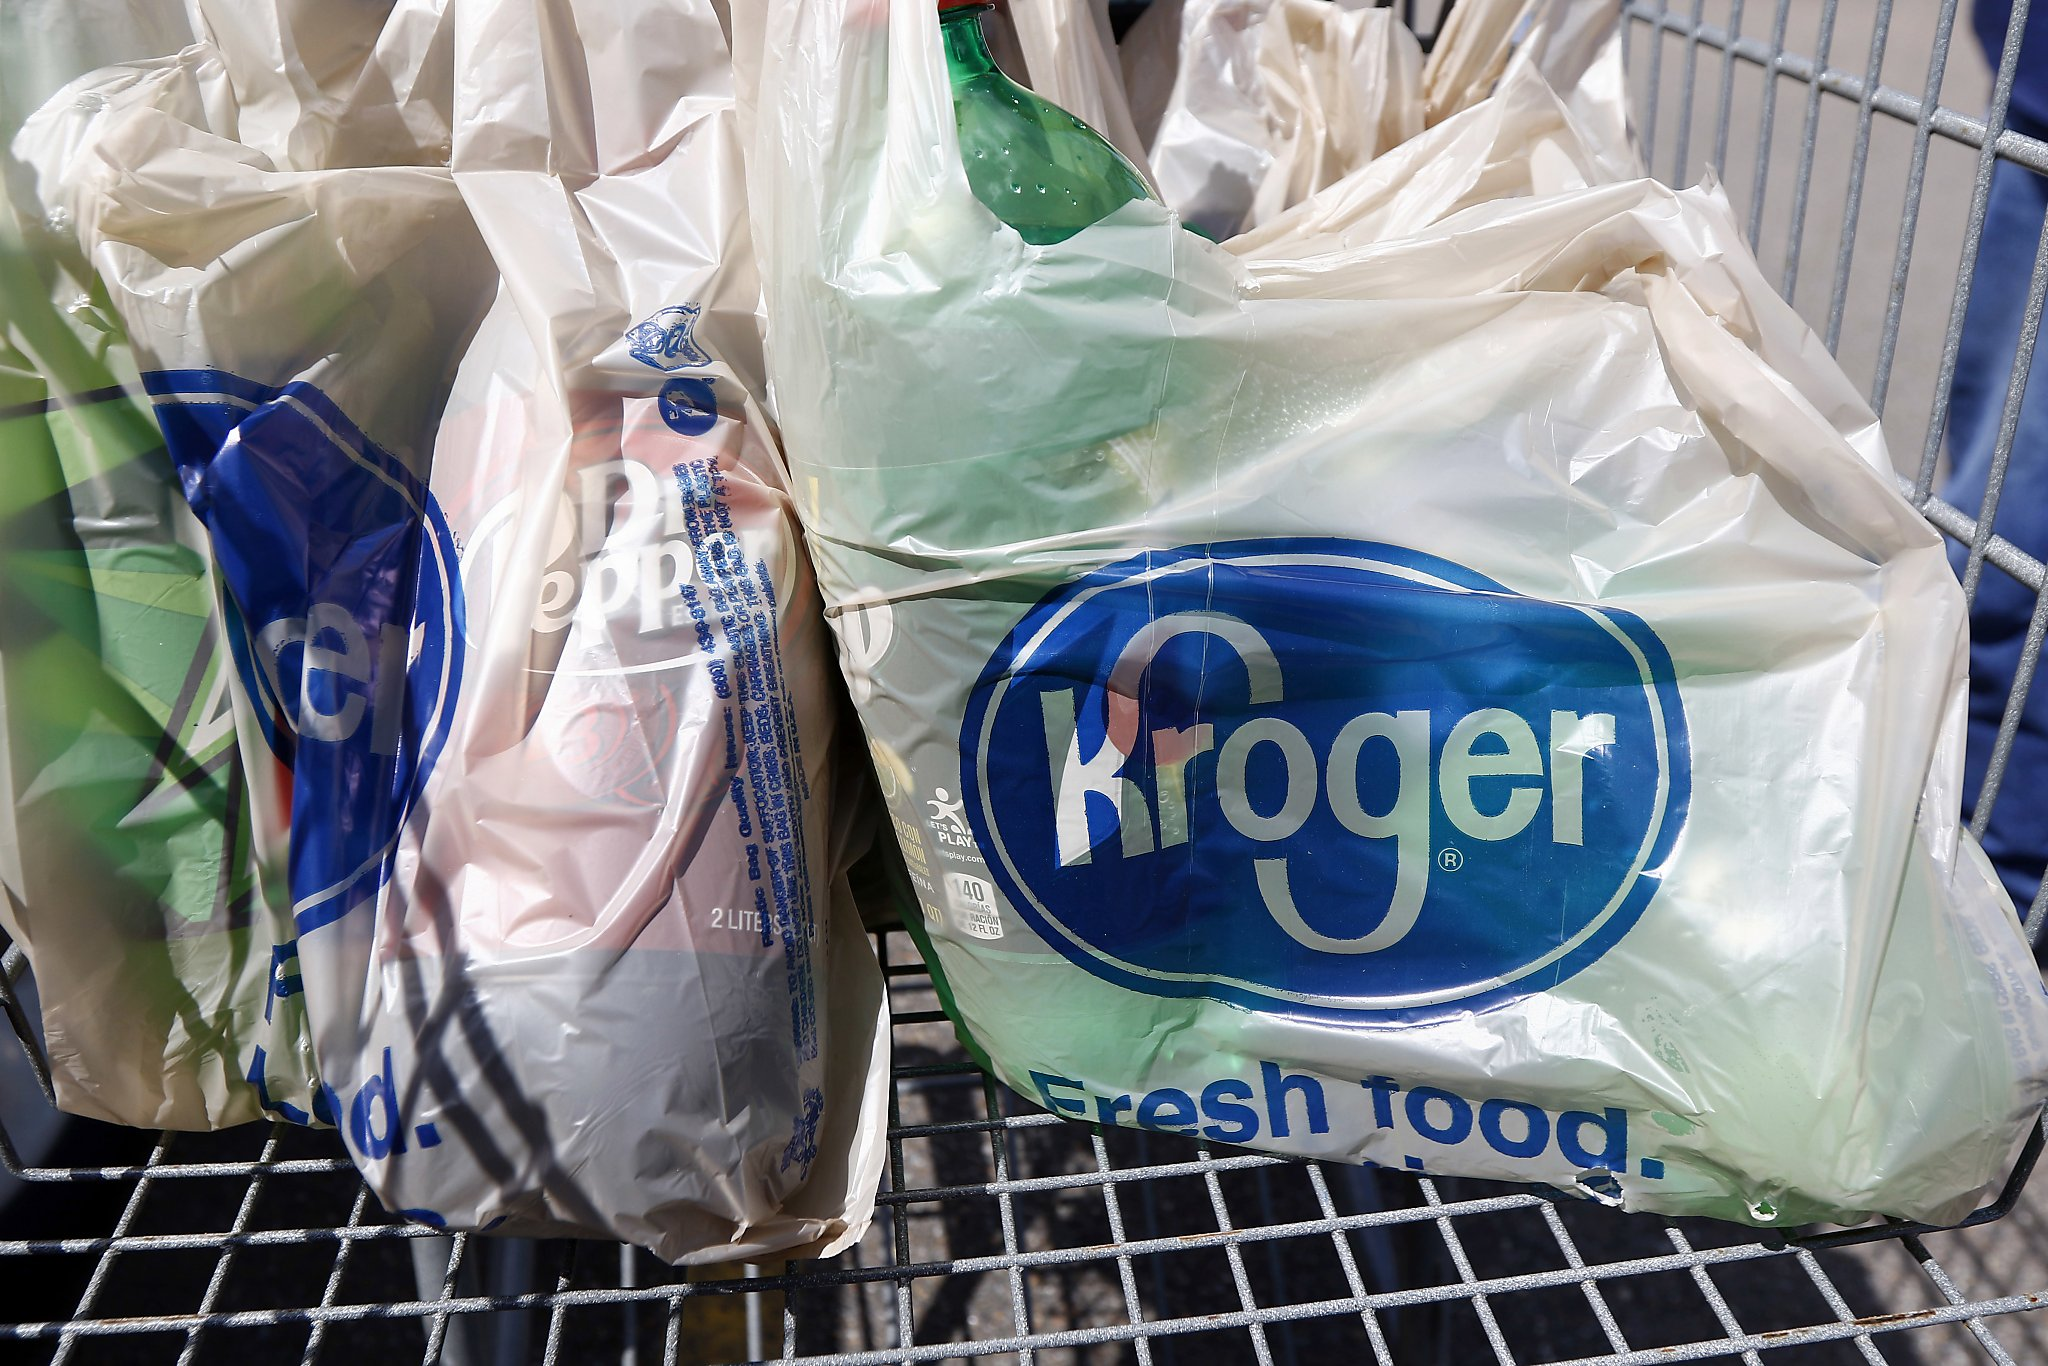 After pandemic delay, Washington's plastic bag ban to go into effect on Oct. 1